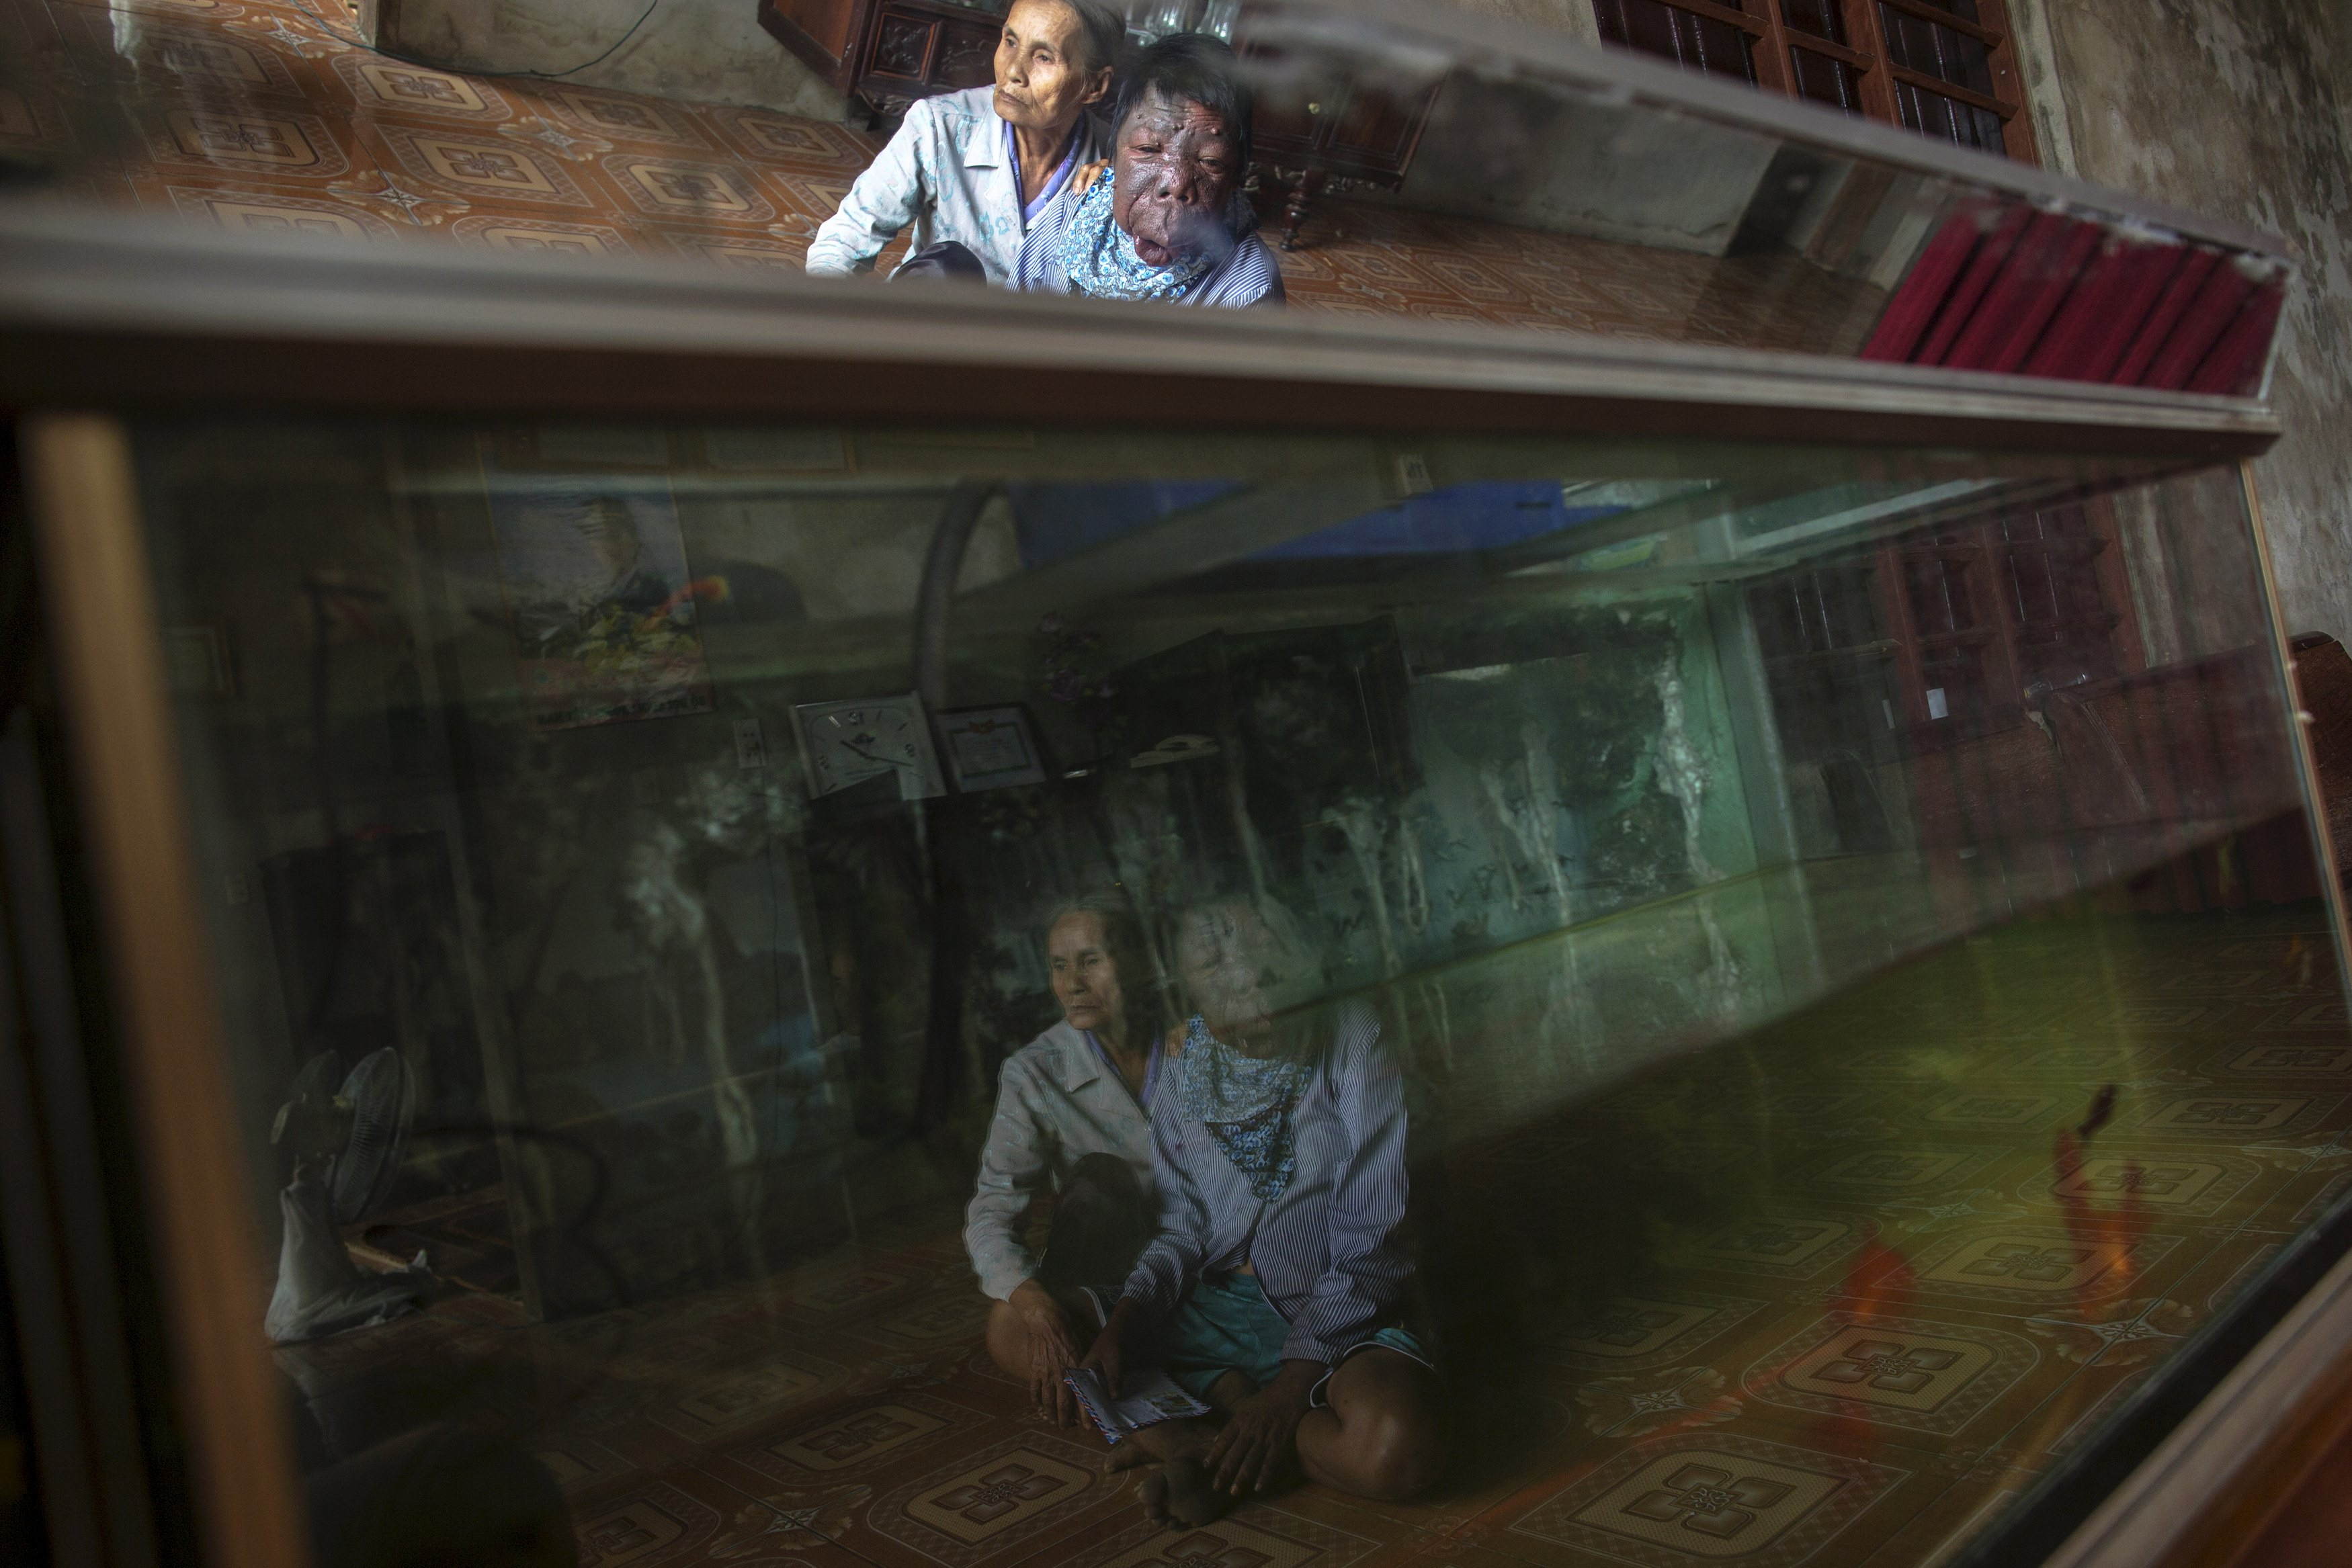 Dang Thi Quang and her son Nguyen Van Binh are reflected in an aquarium in their home in Vietnam's Quang Binh province April 11, 2015. Nguyen Van Binh's father, a soldier who served in the Vietnamese army's transportation unit in the North, travelled and spent time in areas known as hotspots for Agent Orange contamination.